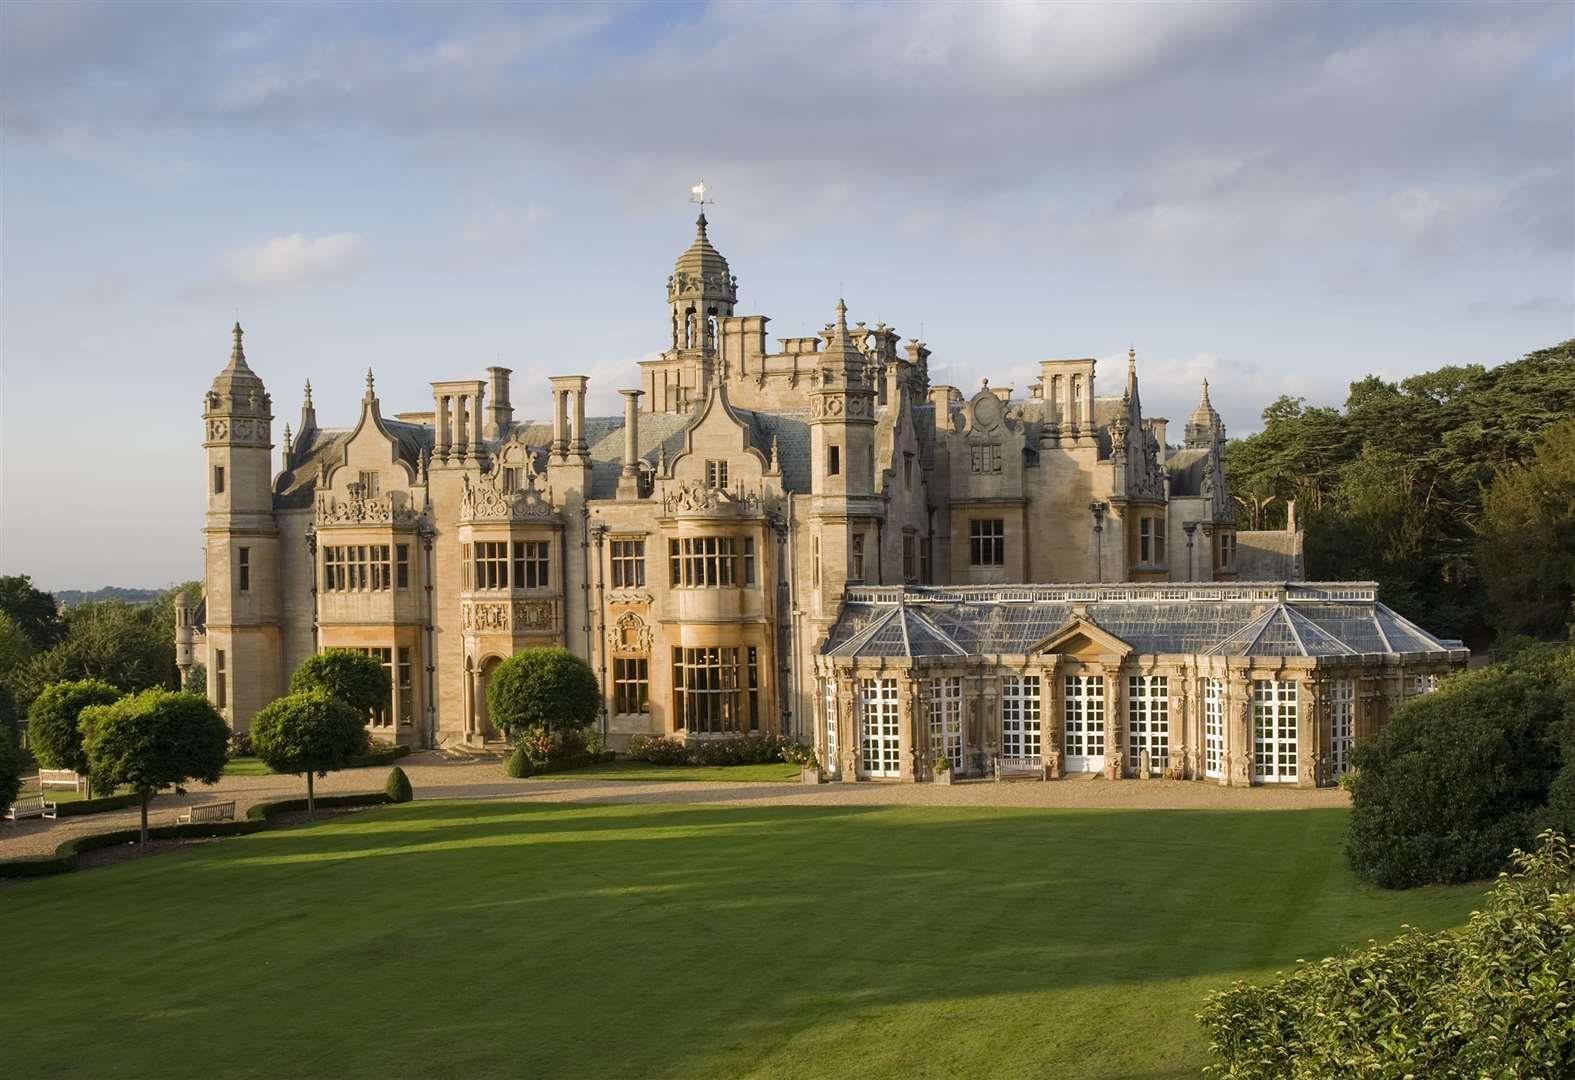 Once-a-year opportunity to view Harlaxton Manor at close quarters